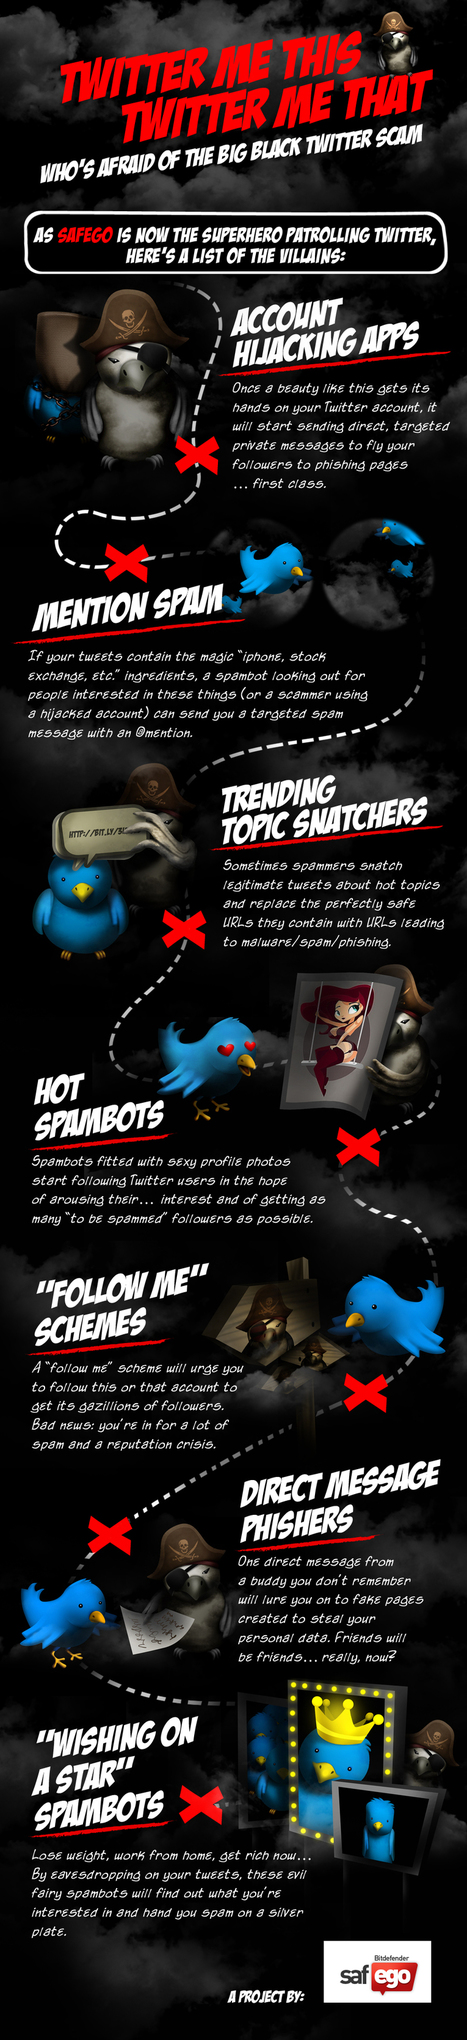 [Infographic] Types of Twitter Scams | Secondary Education; 21st Century Technology and Social Media | Scoop.it